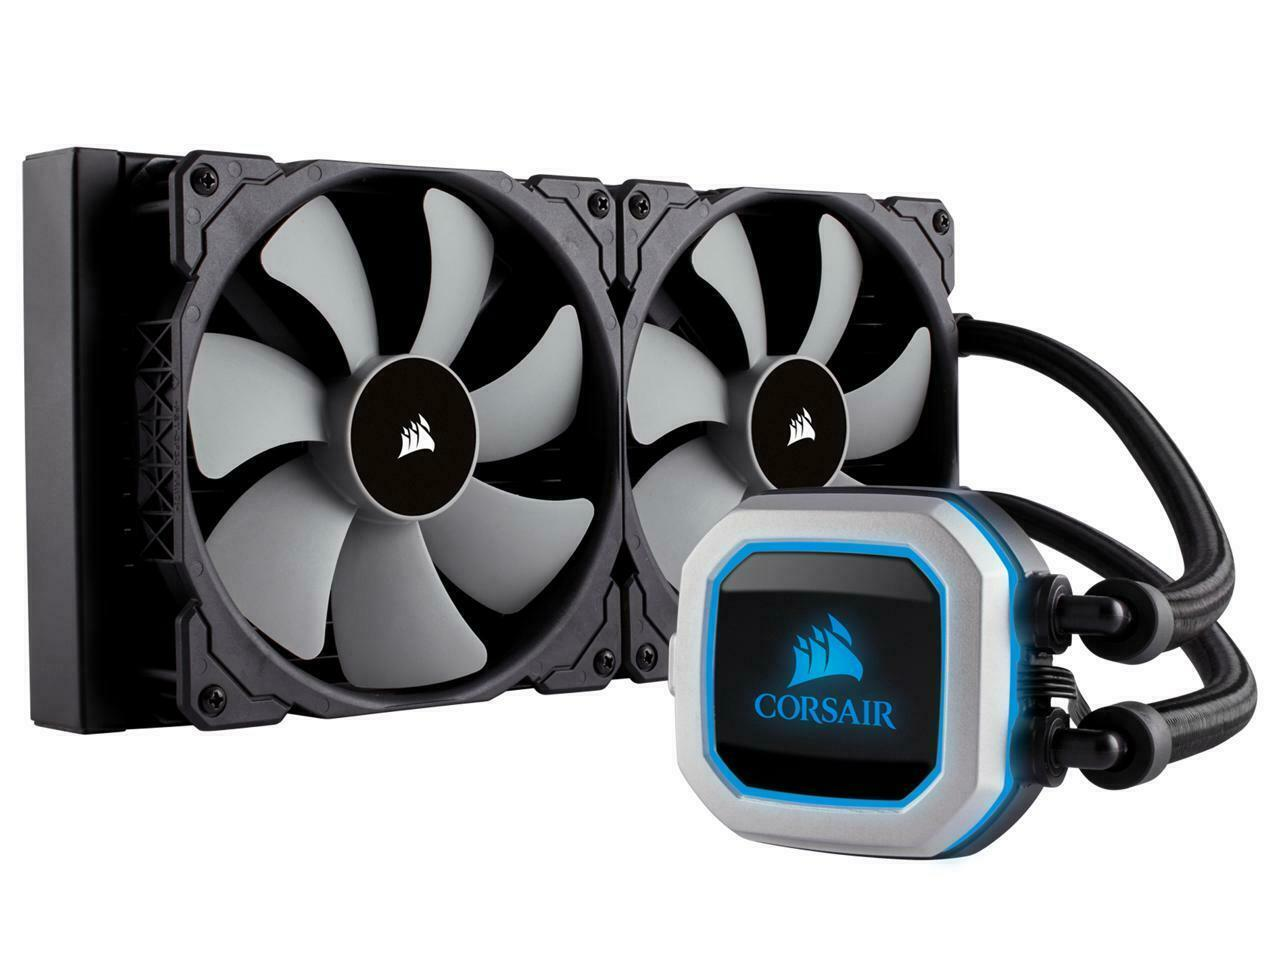 Corsair Hydro Series H115i PRO RGB 280mm Dual 140mm ML PWM Fans Advanced RGB